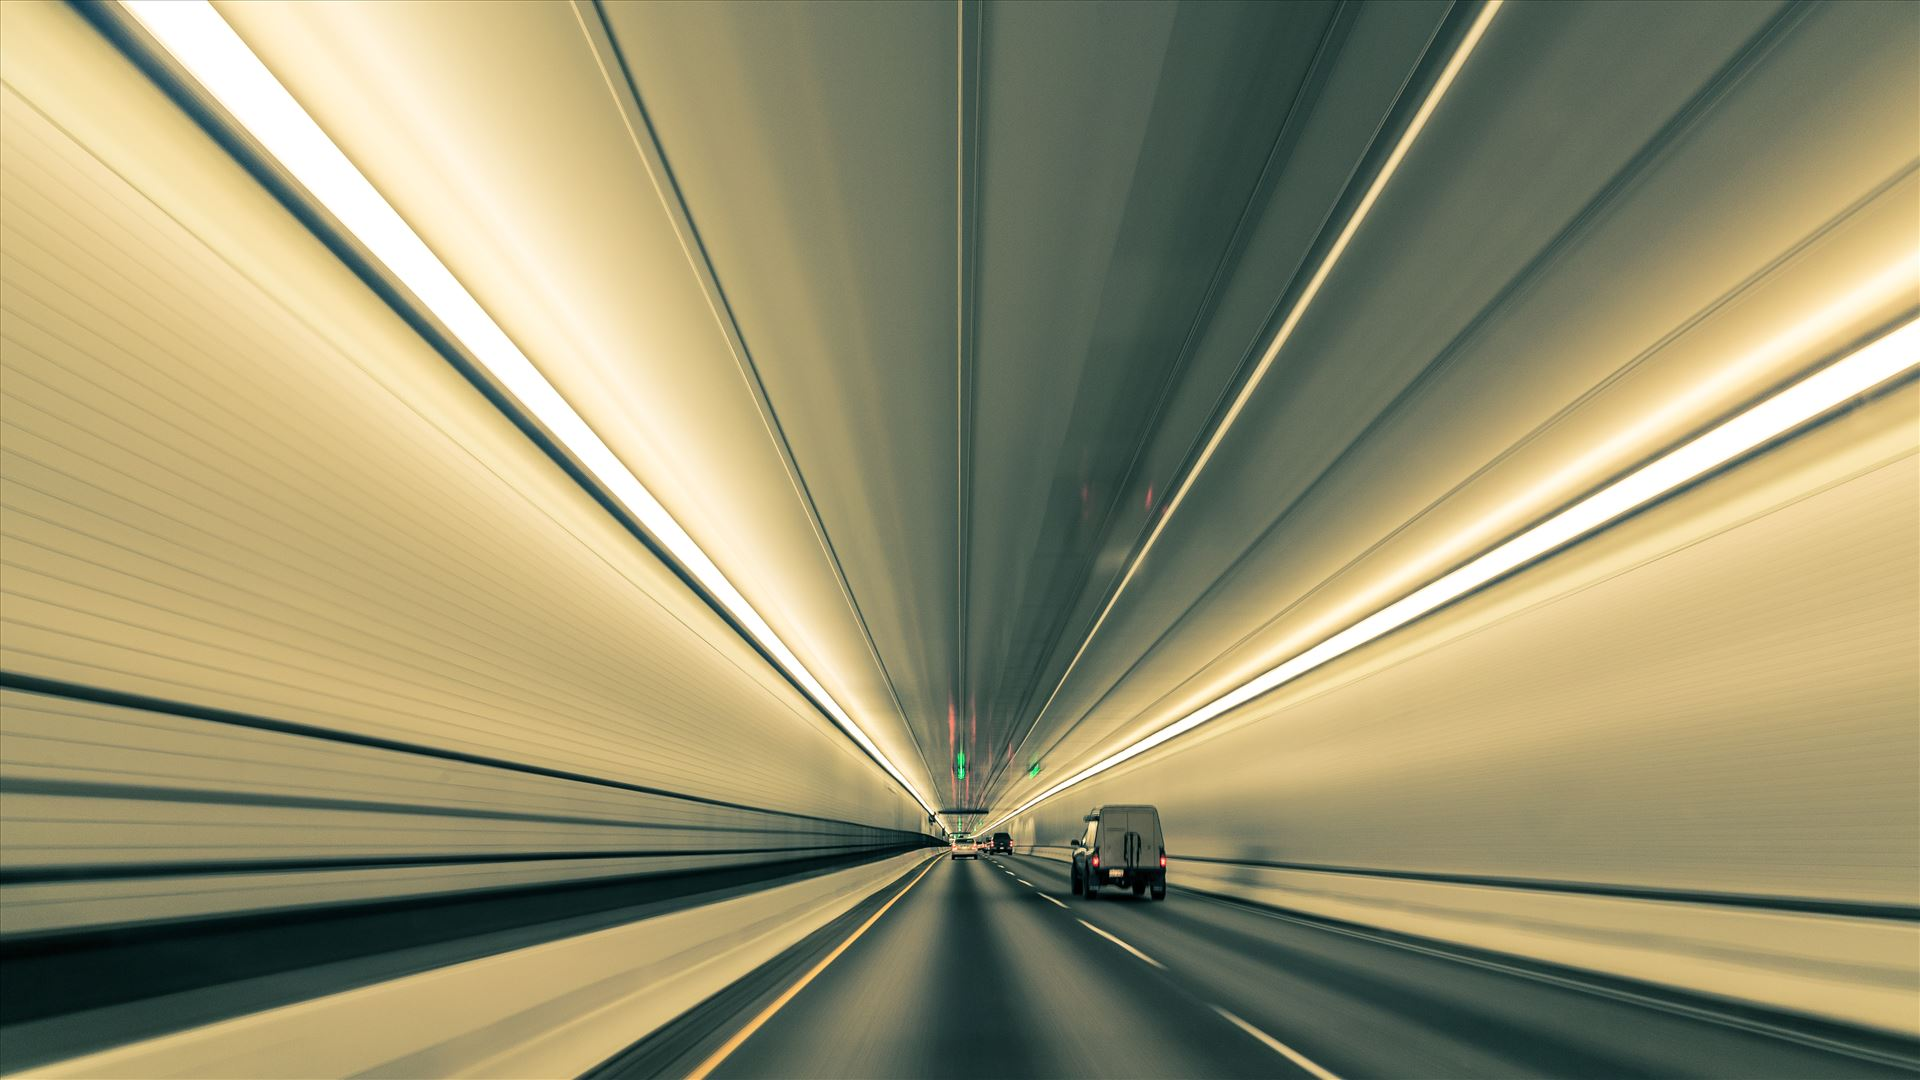 Converging Lines in Eisenhower Tunnel - Lines nearly converge to infinity, in this long exposure handheld shot in Eisenhower Tunnel. Opened in 1973, the Eisenhower Tunnel in the Rocky Mountains of Colorado on interstate 70 is highest vehicle tunnel in the world at 11,155 feet. by D Scott Smith